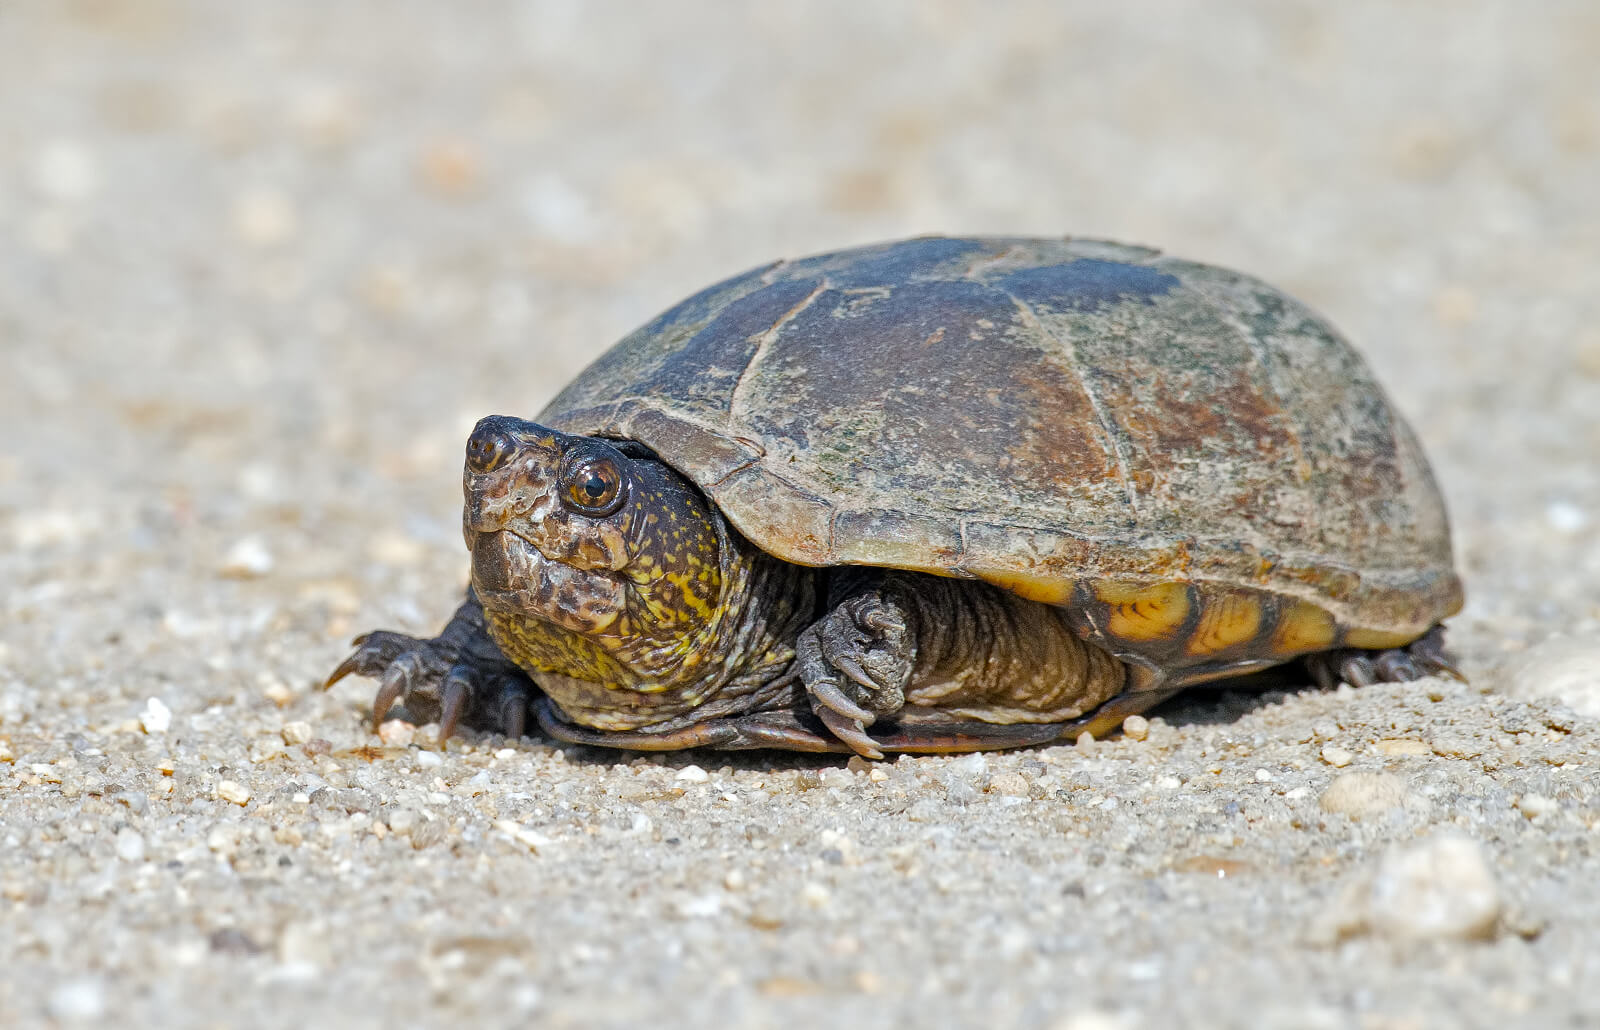 American Snapping Turtle – All Turtles